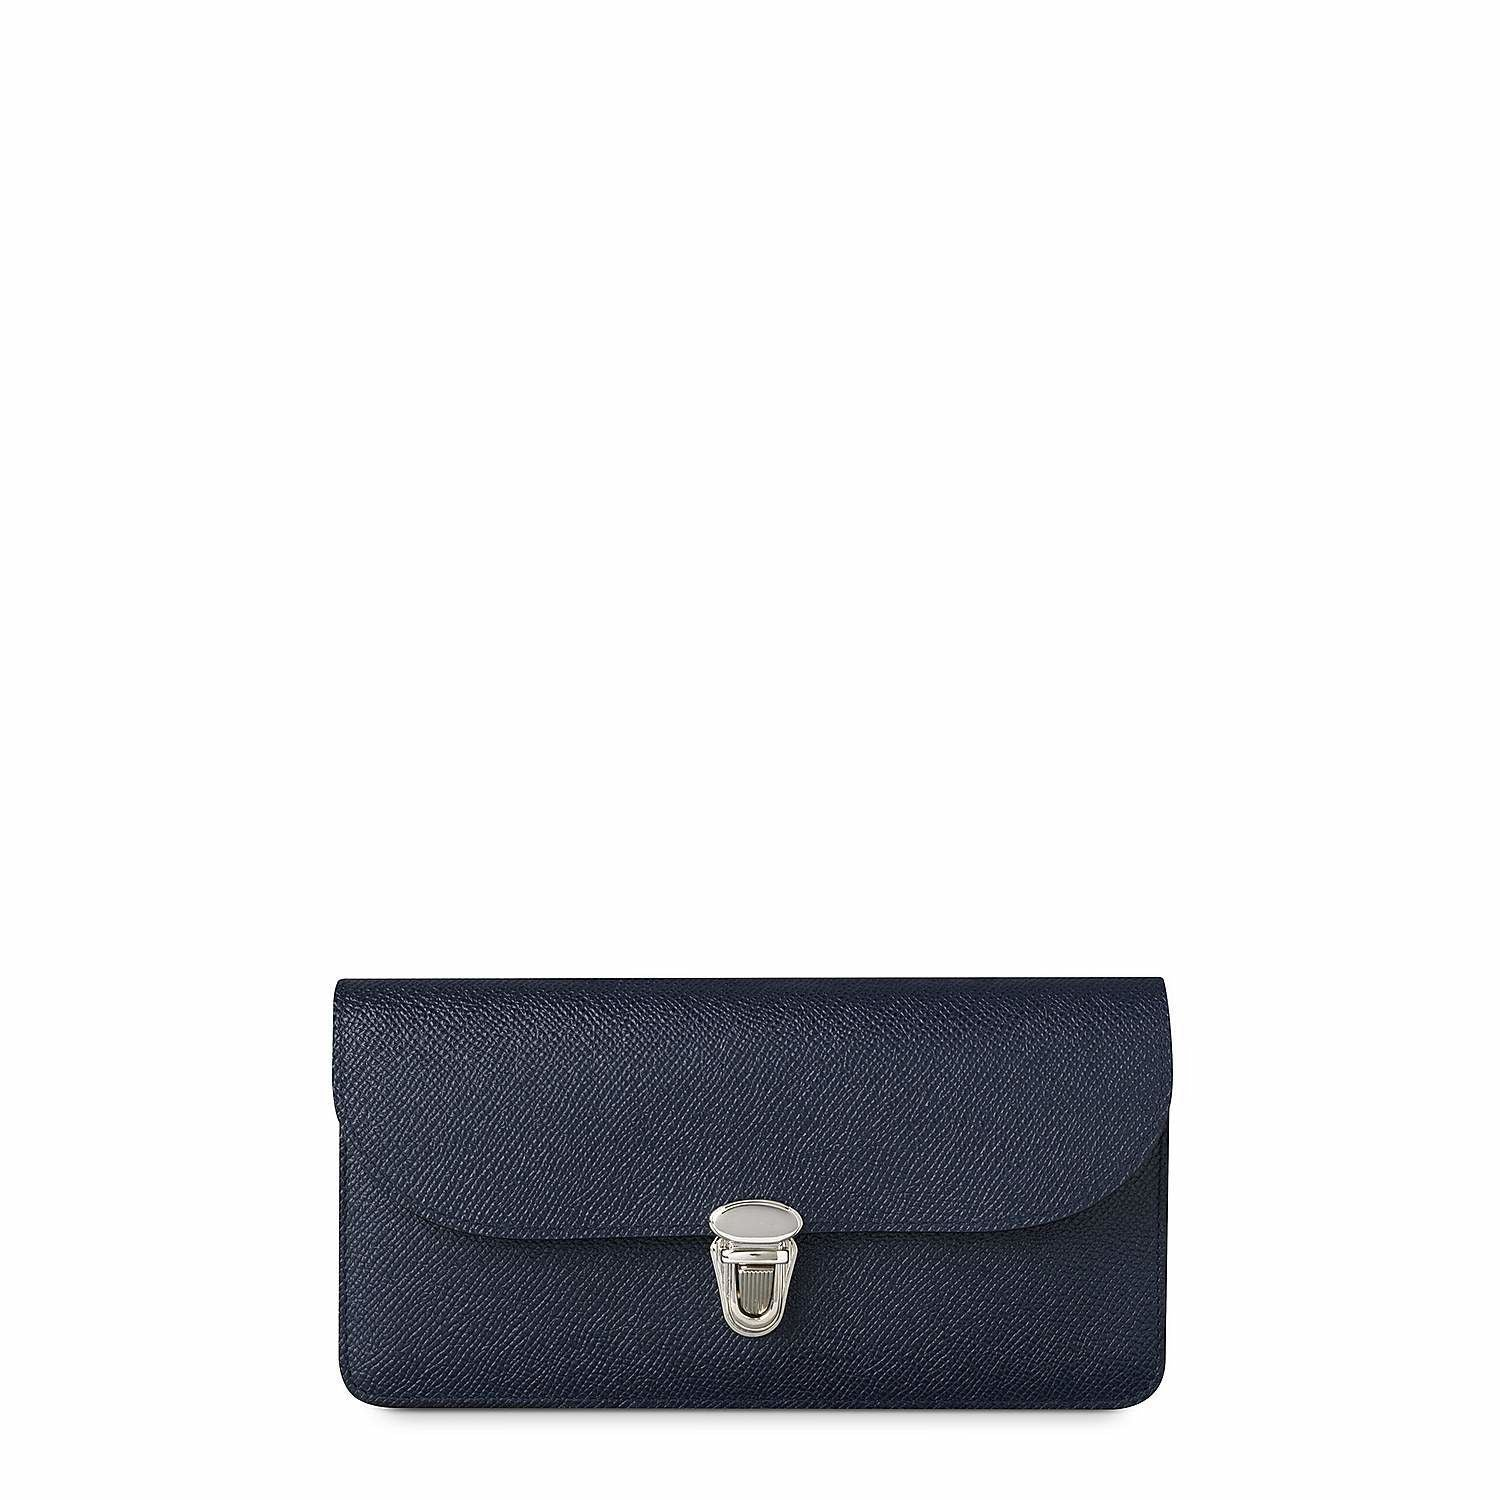 Push Lock Purse with Card Slots in Saffiano Leather - Navy Saffiano